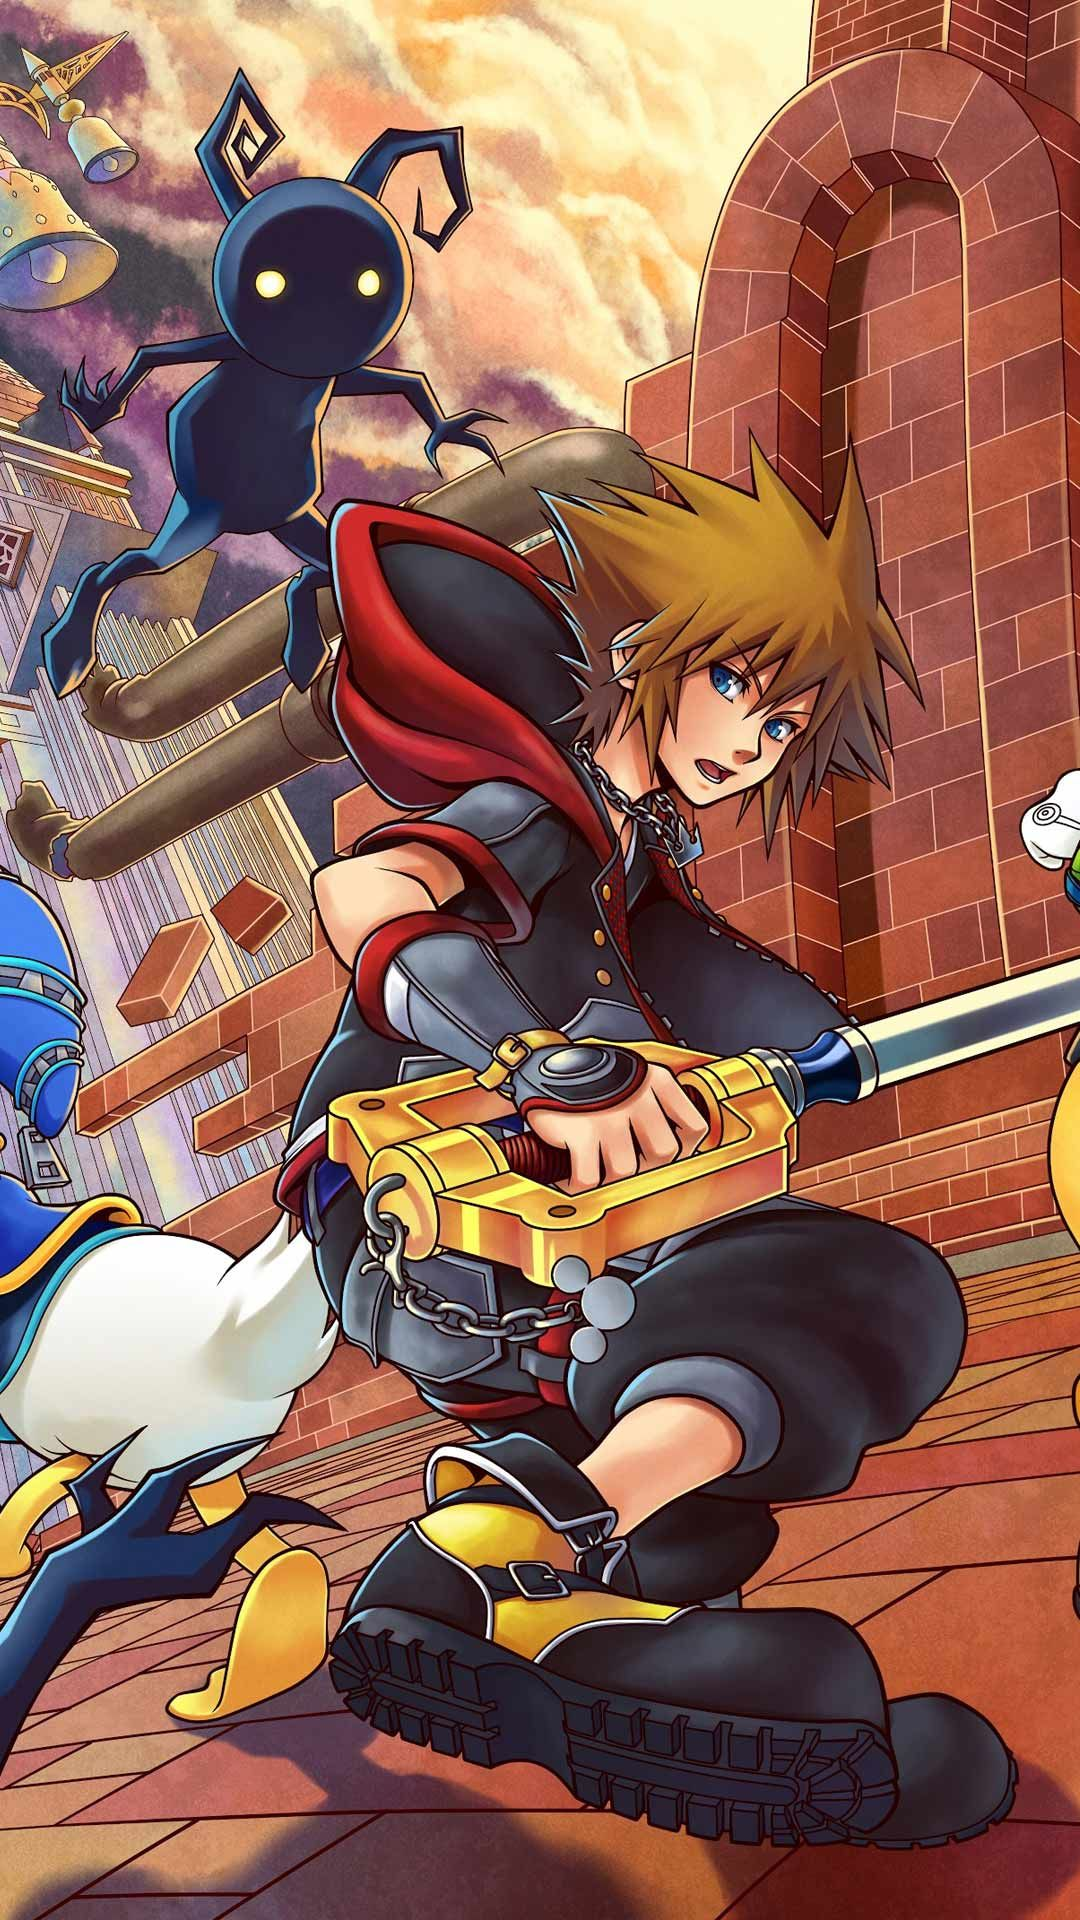 20 Kingdom Hearts 3 Phone Wallpaper Hd Backgrounds Iphone Android Free Characters Art Download Kingdom Hearts Phone Wallpaper Downloadable Art Lock screen kingdom hearts 3 iphone